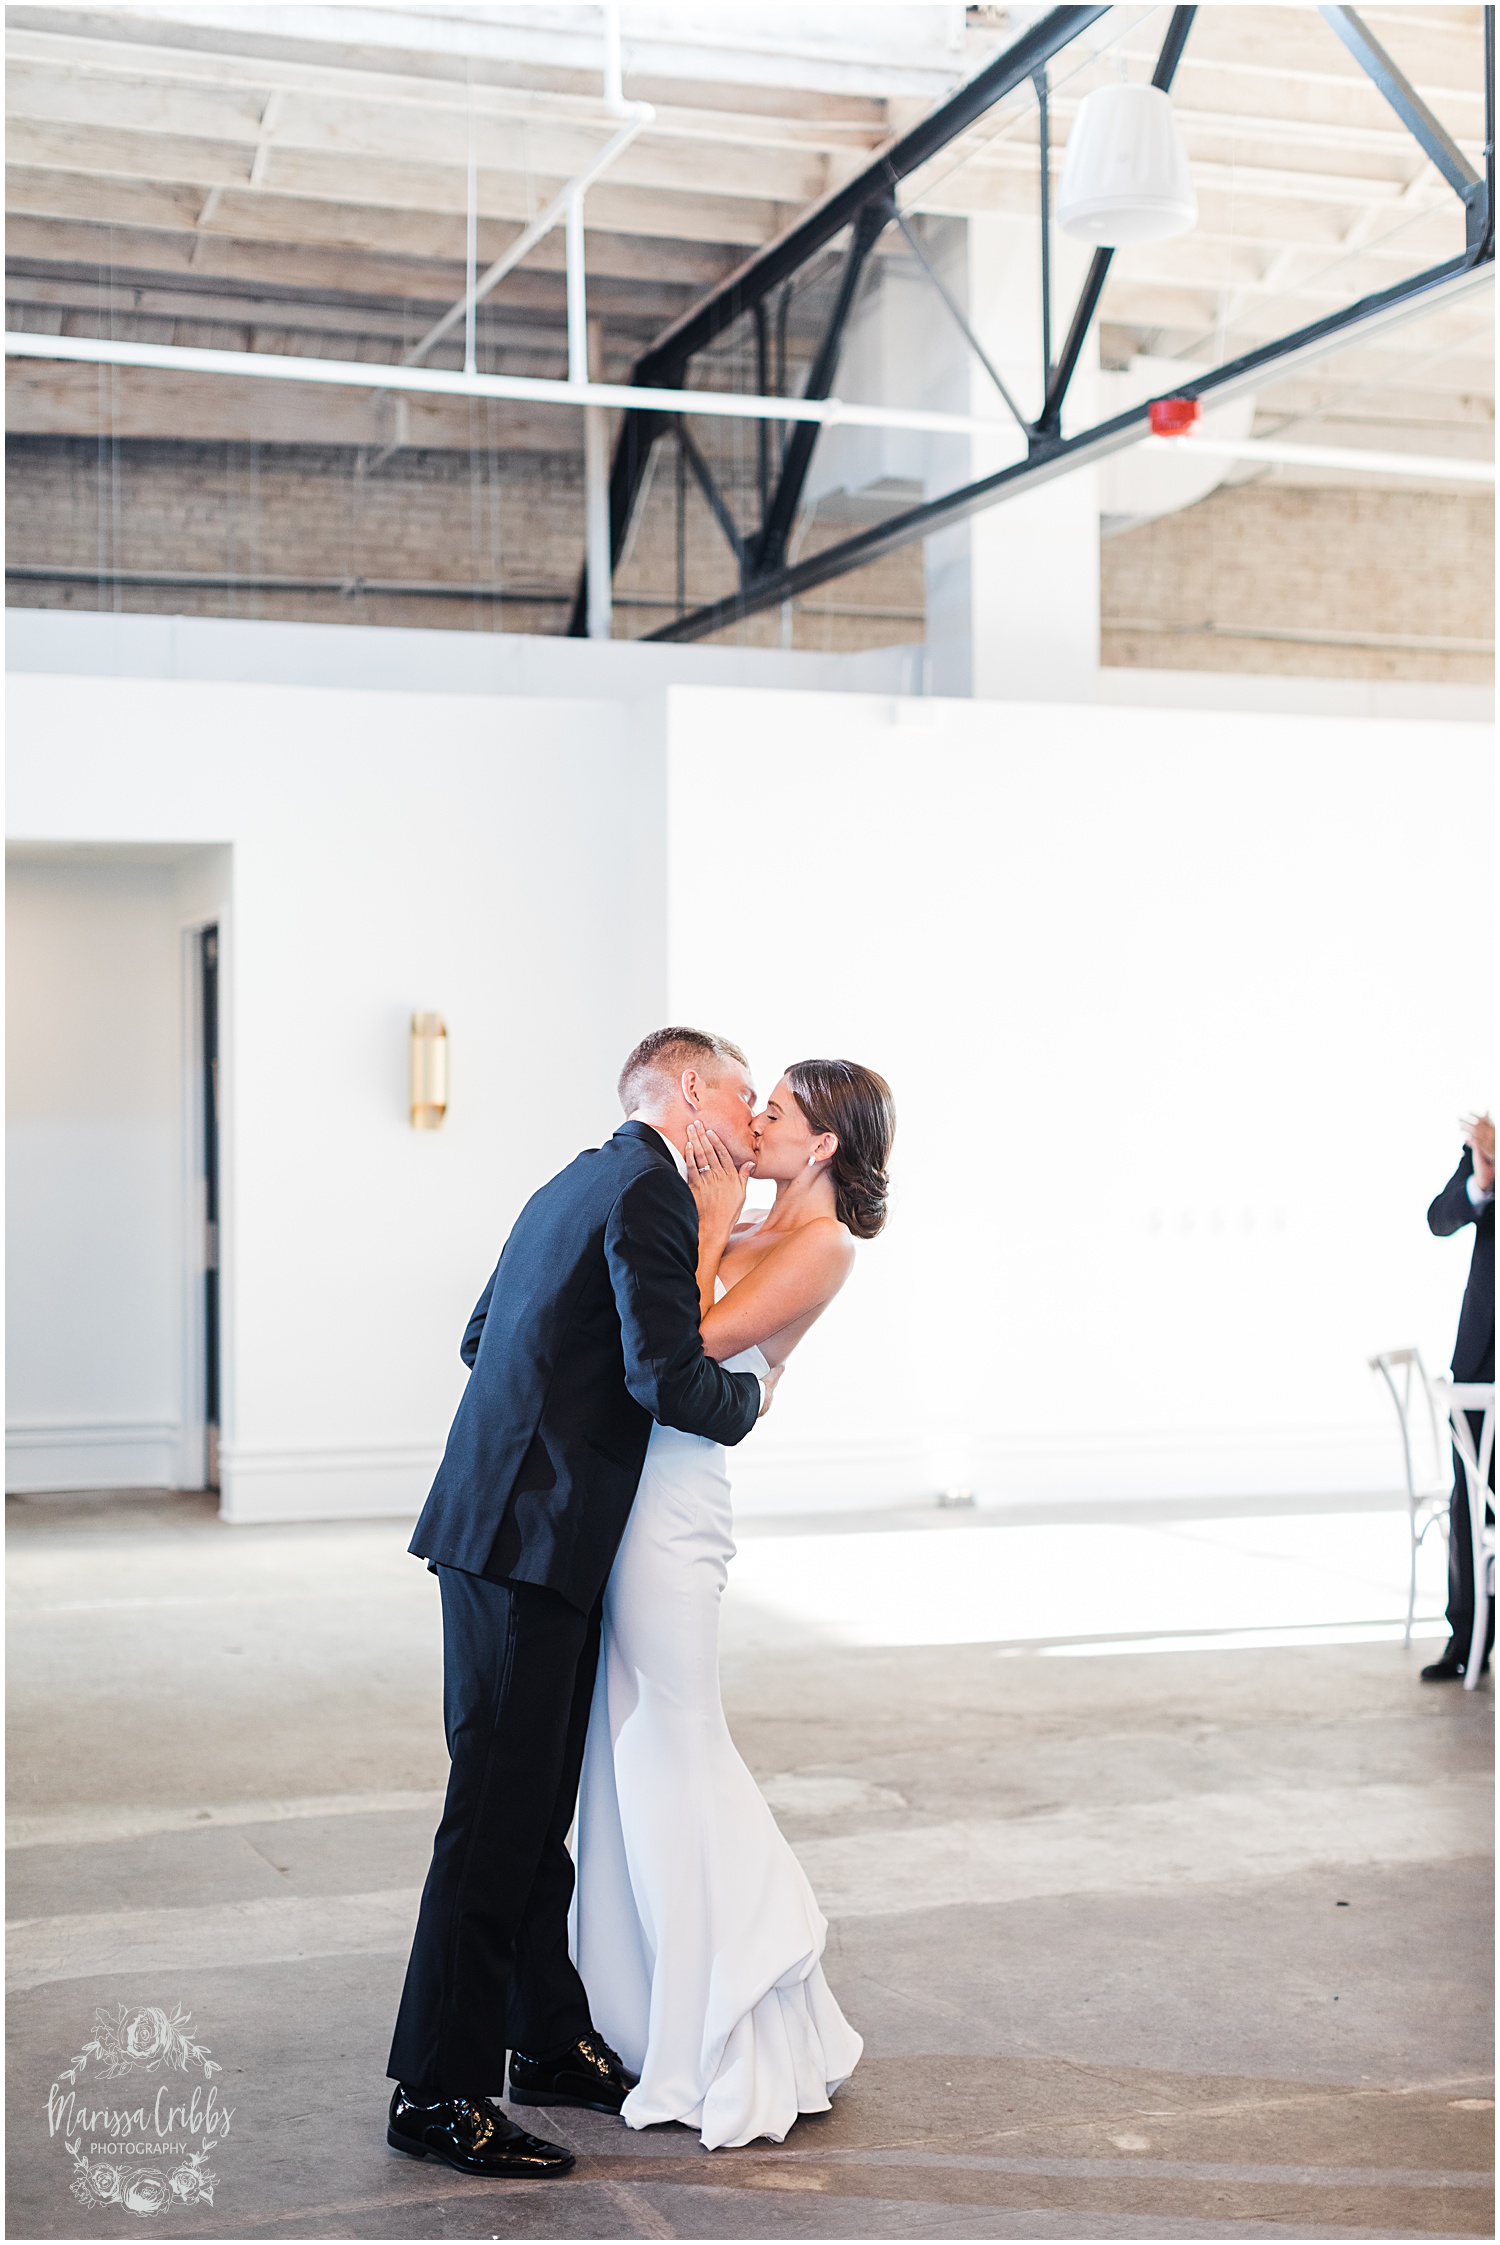 JOANNE & GEORGE MARRIED BLOG | MARISSA CRIBBS PHOTOGRAPHY | THE ABBOTT | KANSAS CITY WEDDING PHOTOS_9146.jpg